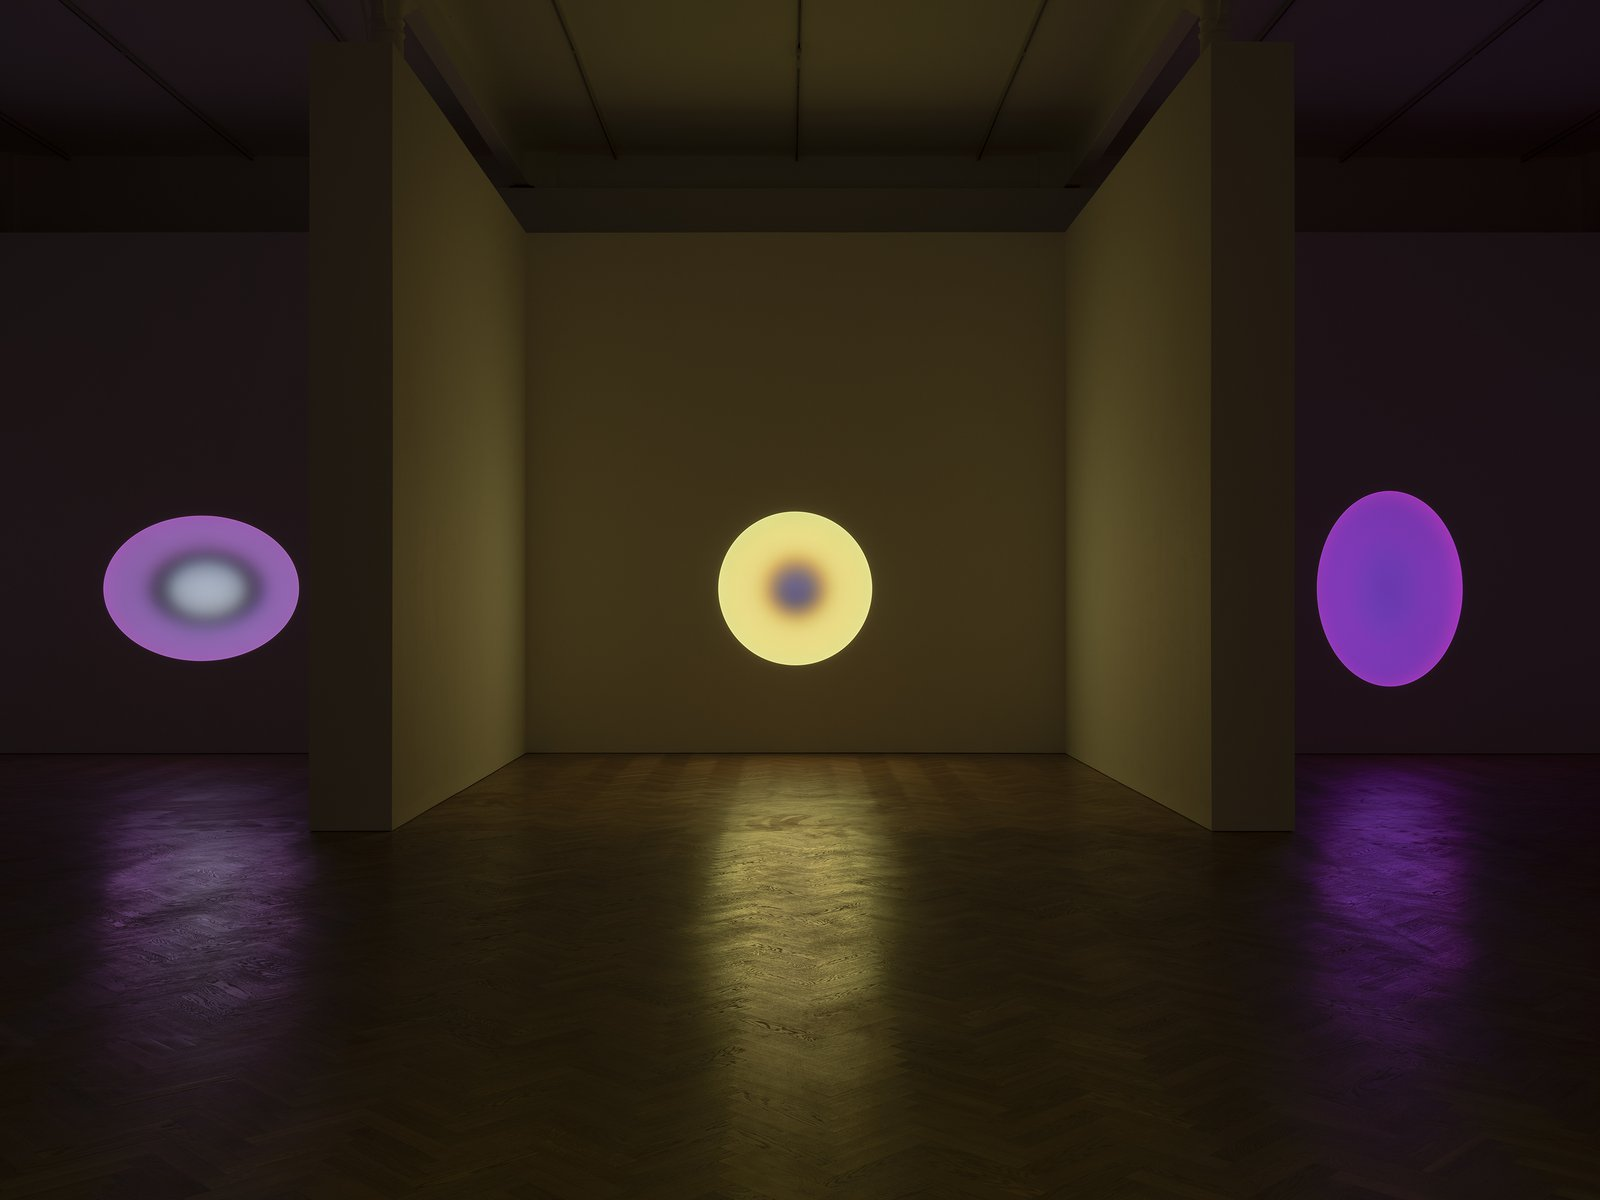 James-Turrell-Pace-Gallery-London.-Courtesy-James-Turrell-Photo-Damian-Griffiths